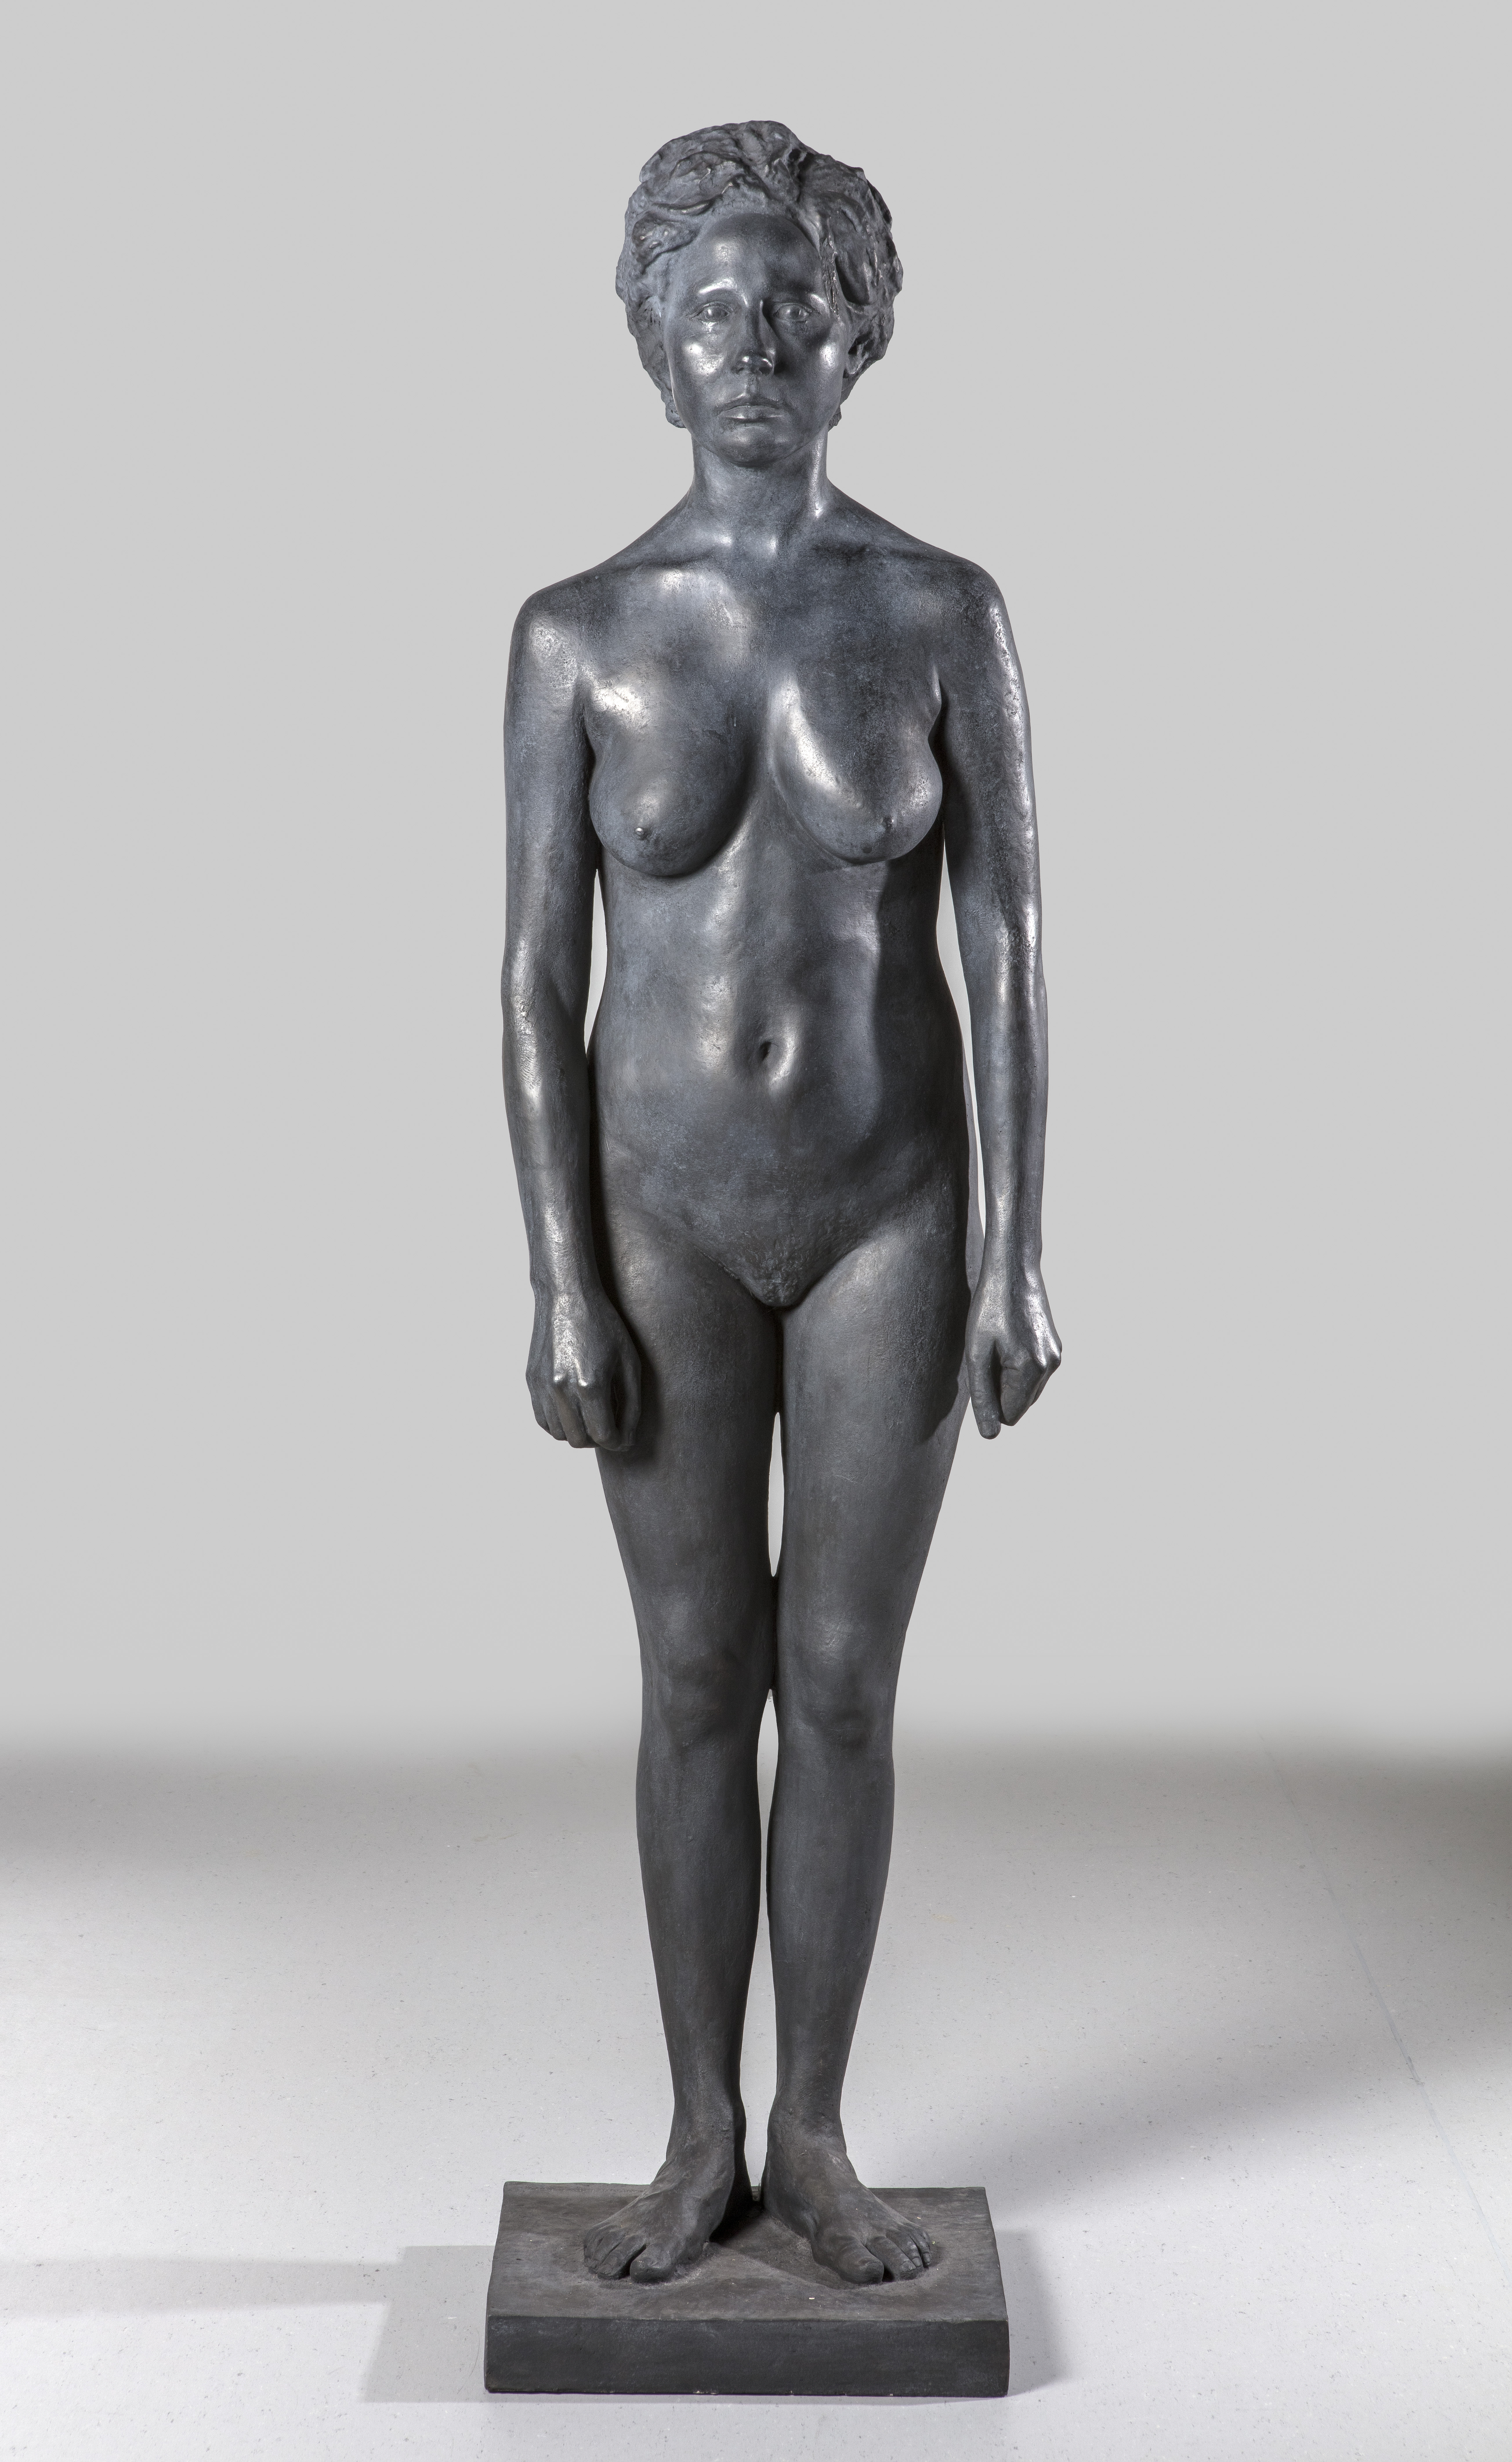 Mujer, 2017, bronce, 165,5 x 42,5 x 37 cm